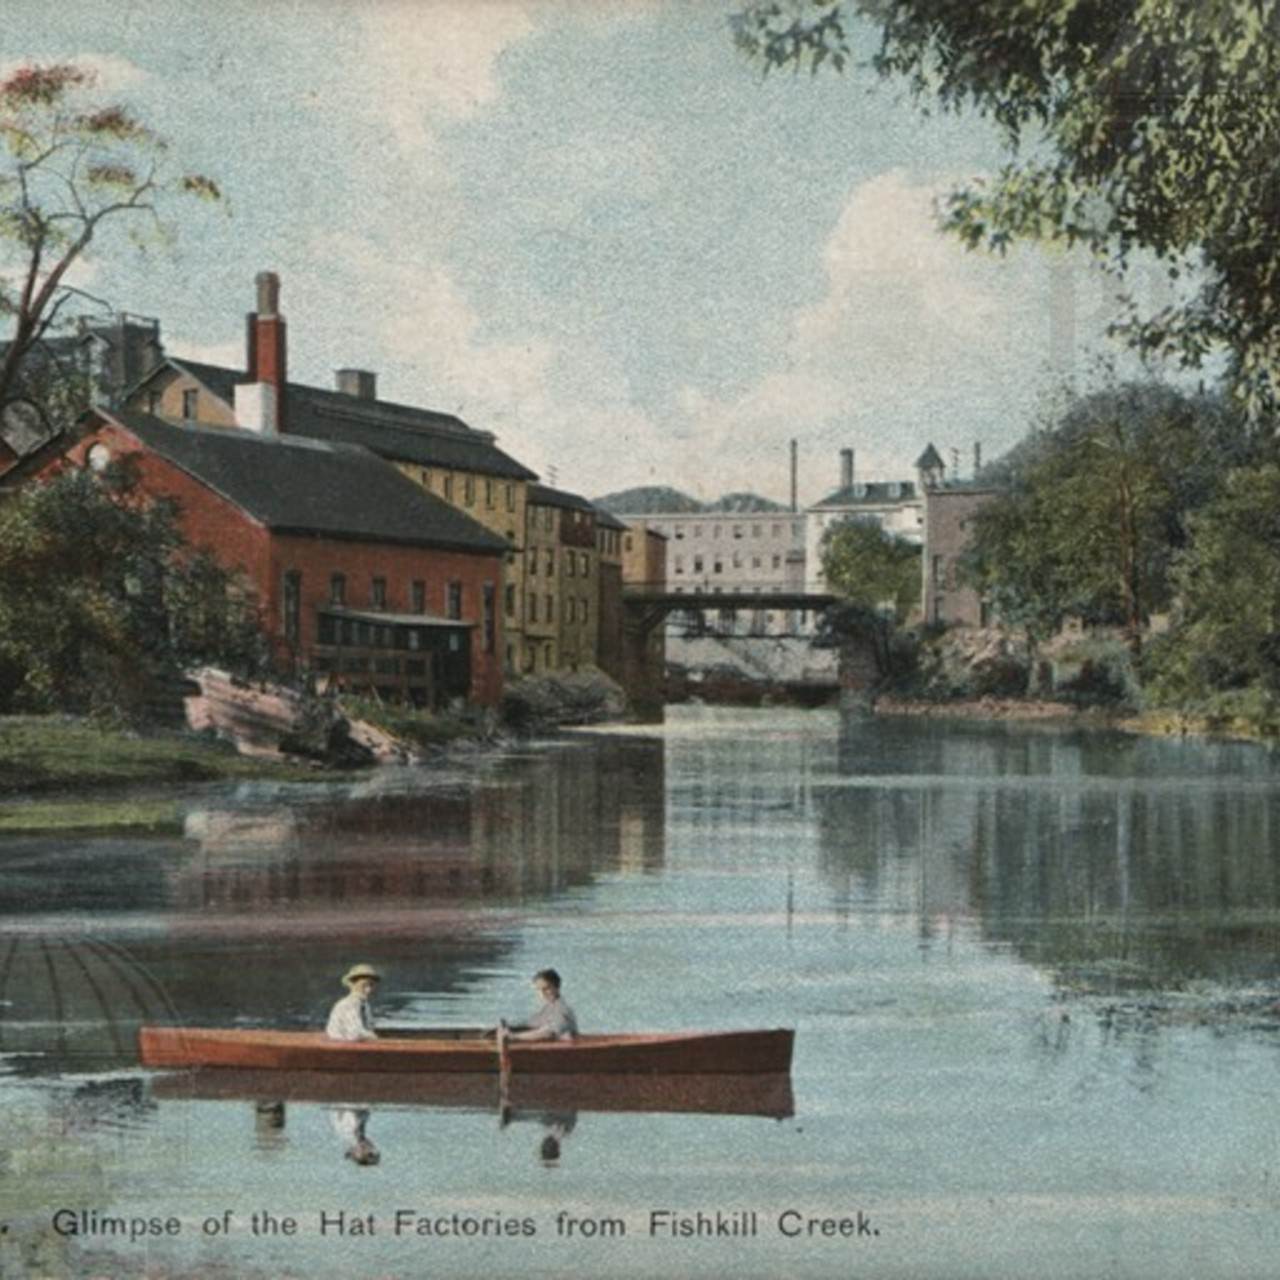 Glimpse of the Hat Factories from Fishkill Creek